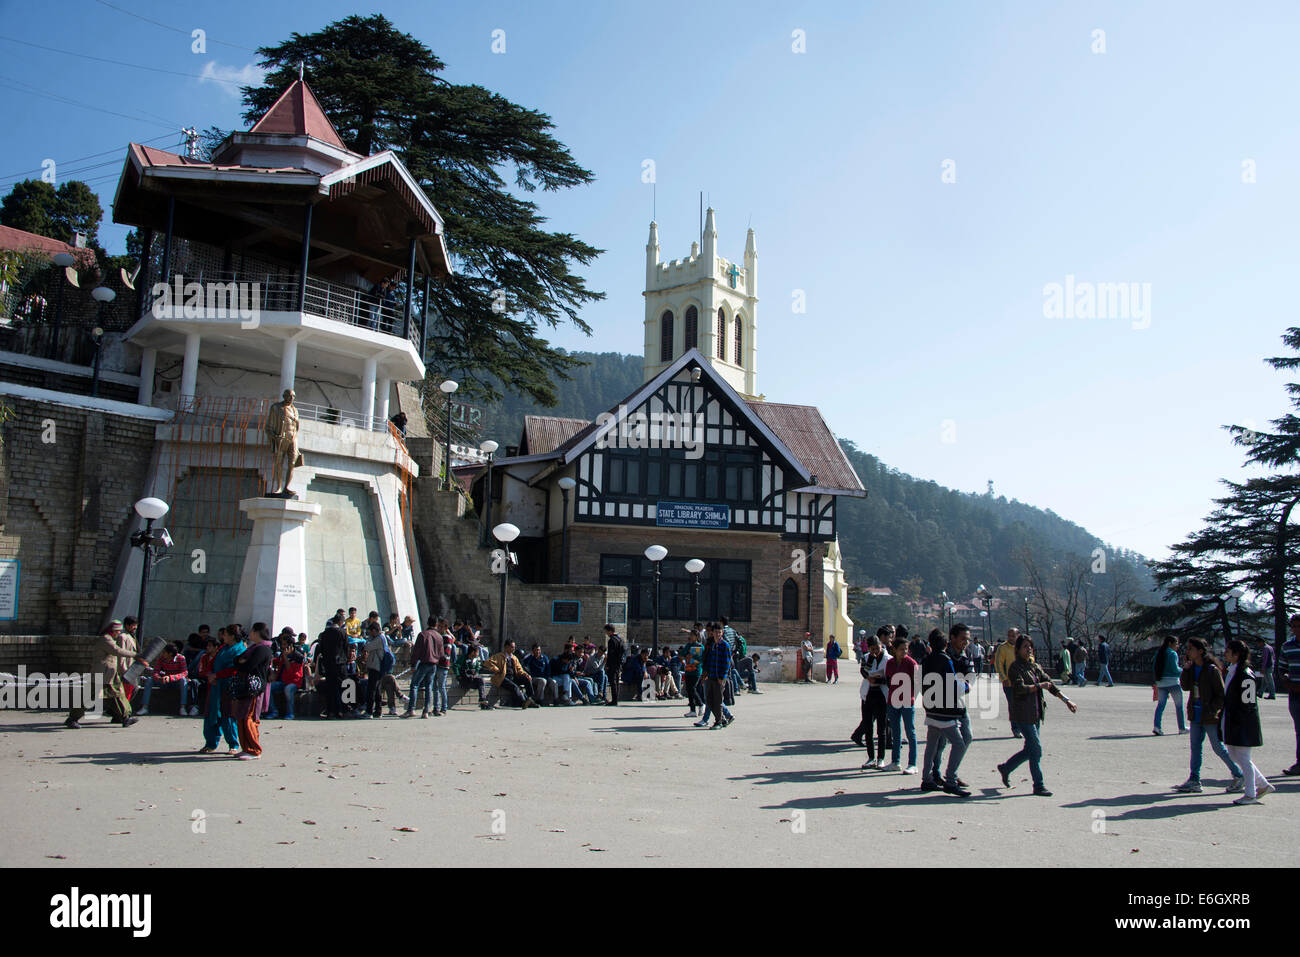 Visitors on the Ridge with Christ Church tower in Shimla ,Himachal Pradesh,India - Stock Image